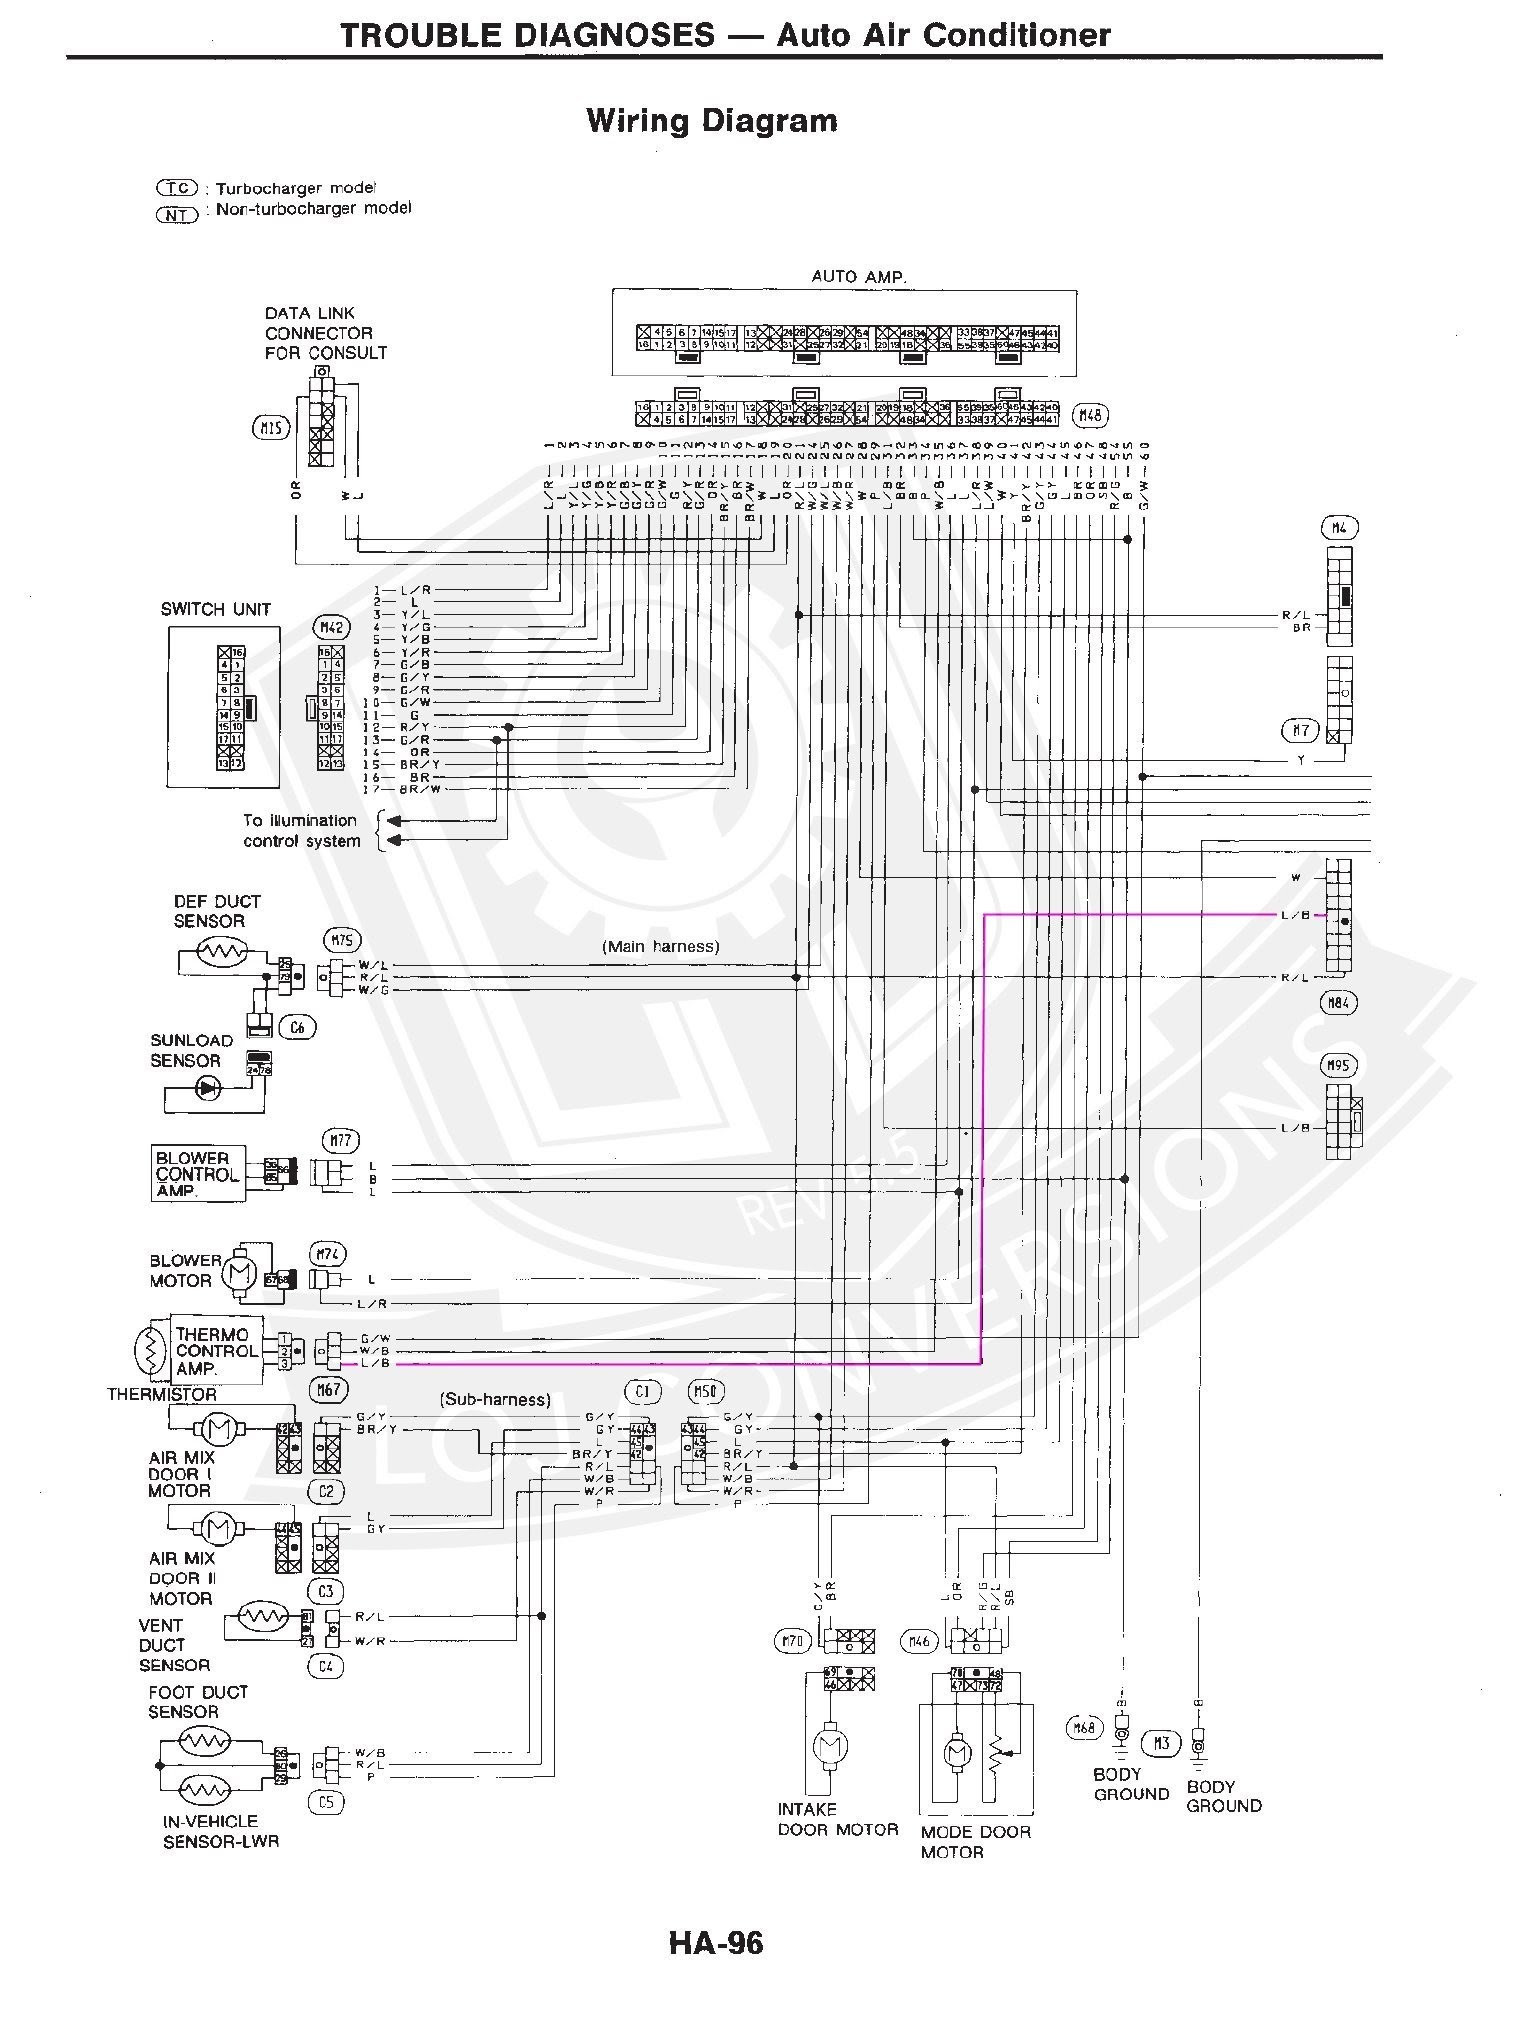 Subwoofer And Amp Wiring Diagram from lh6.googleusercontent.com